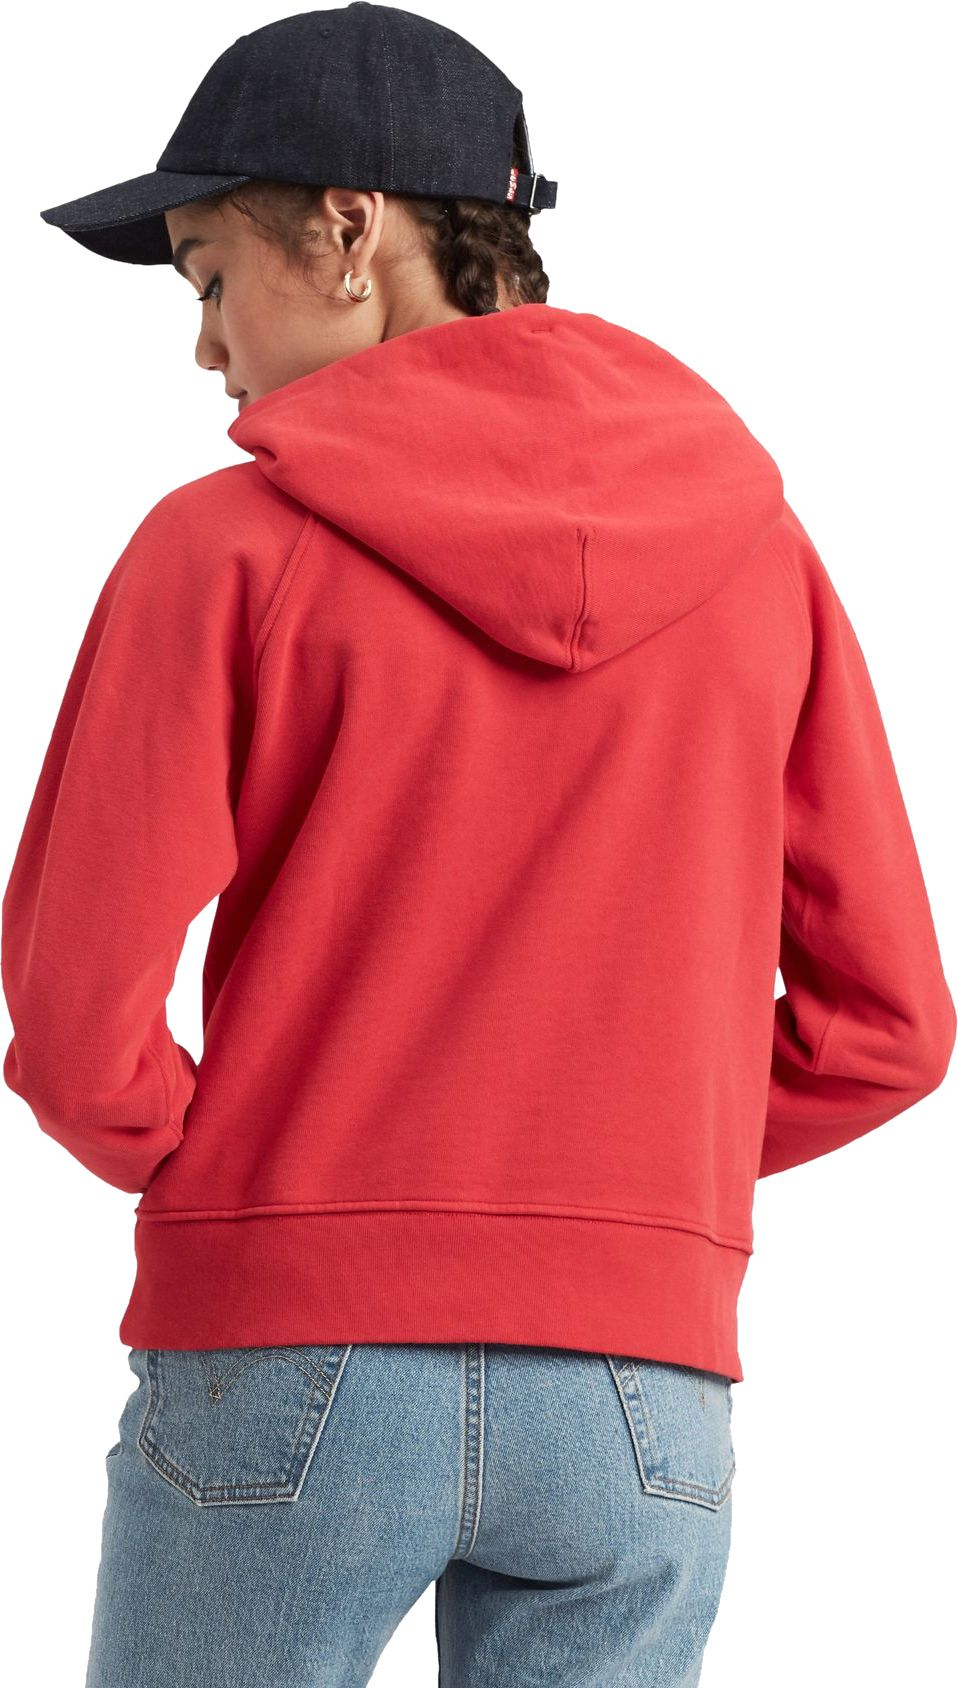 Levi's Women's Graphic Sport Hoodie Red